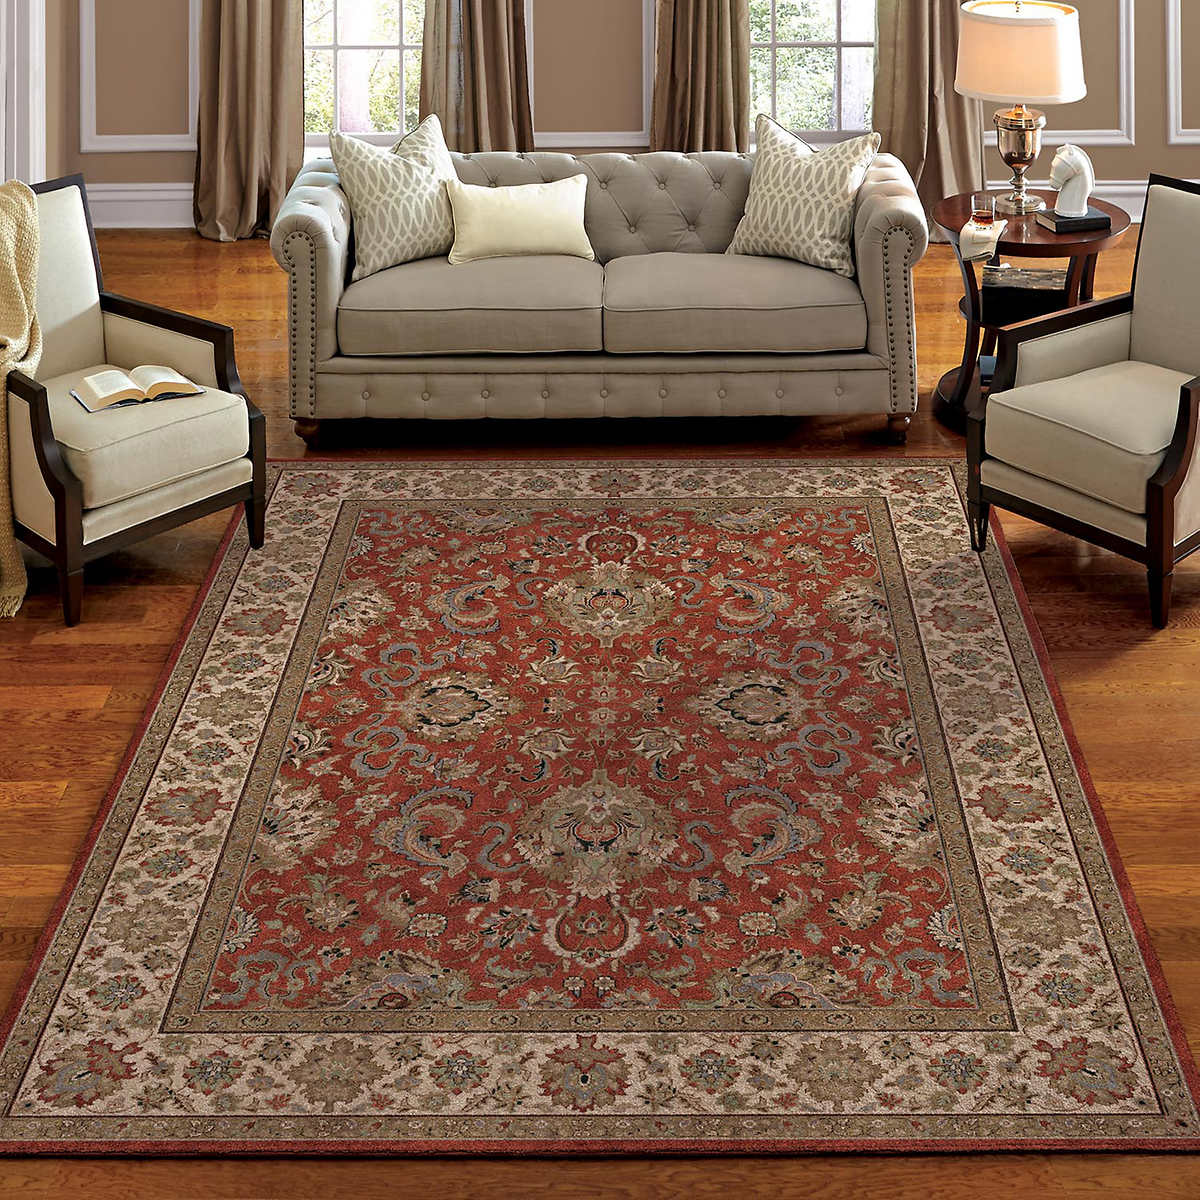 Soft Impressions 100 Olefin Pile Rug Collection